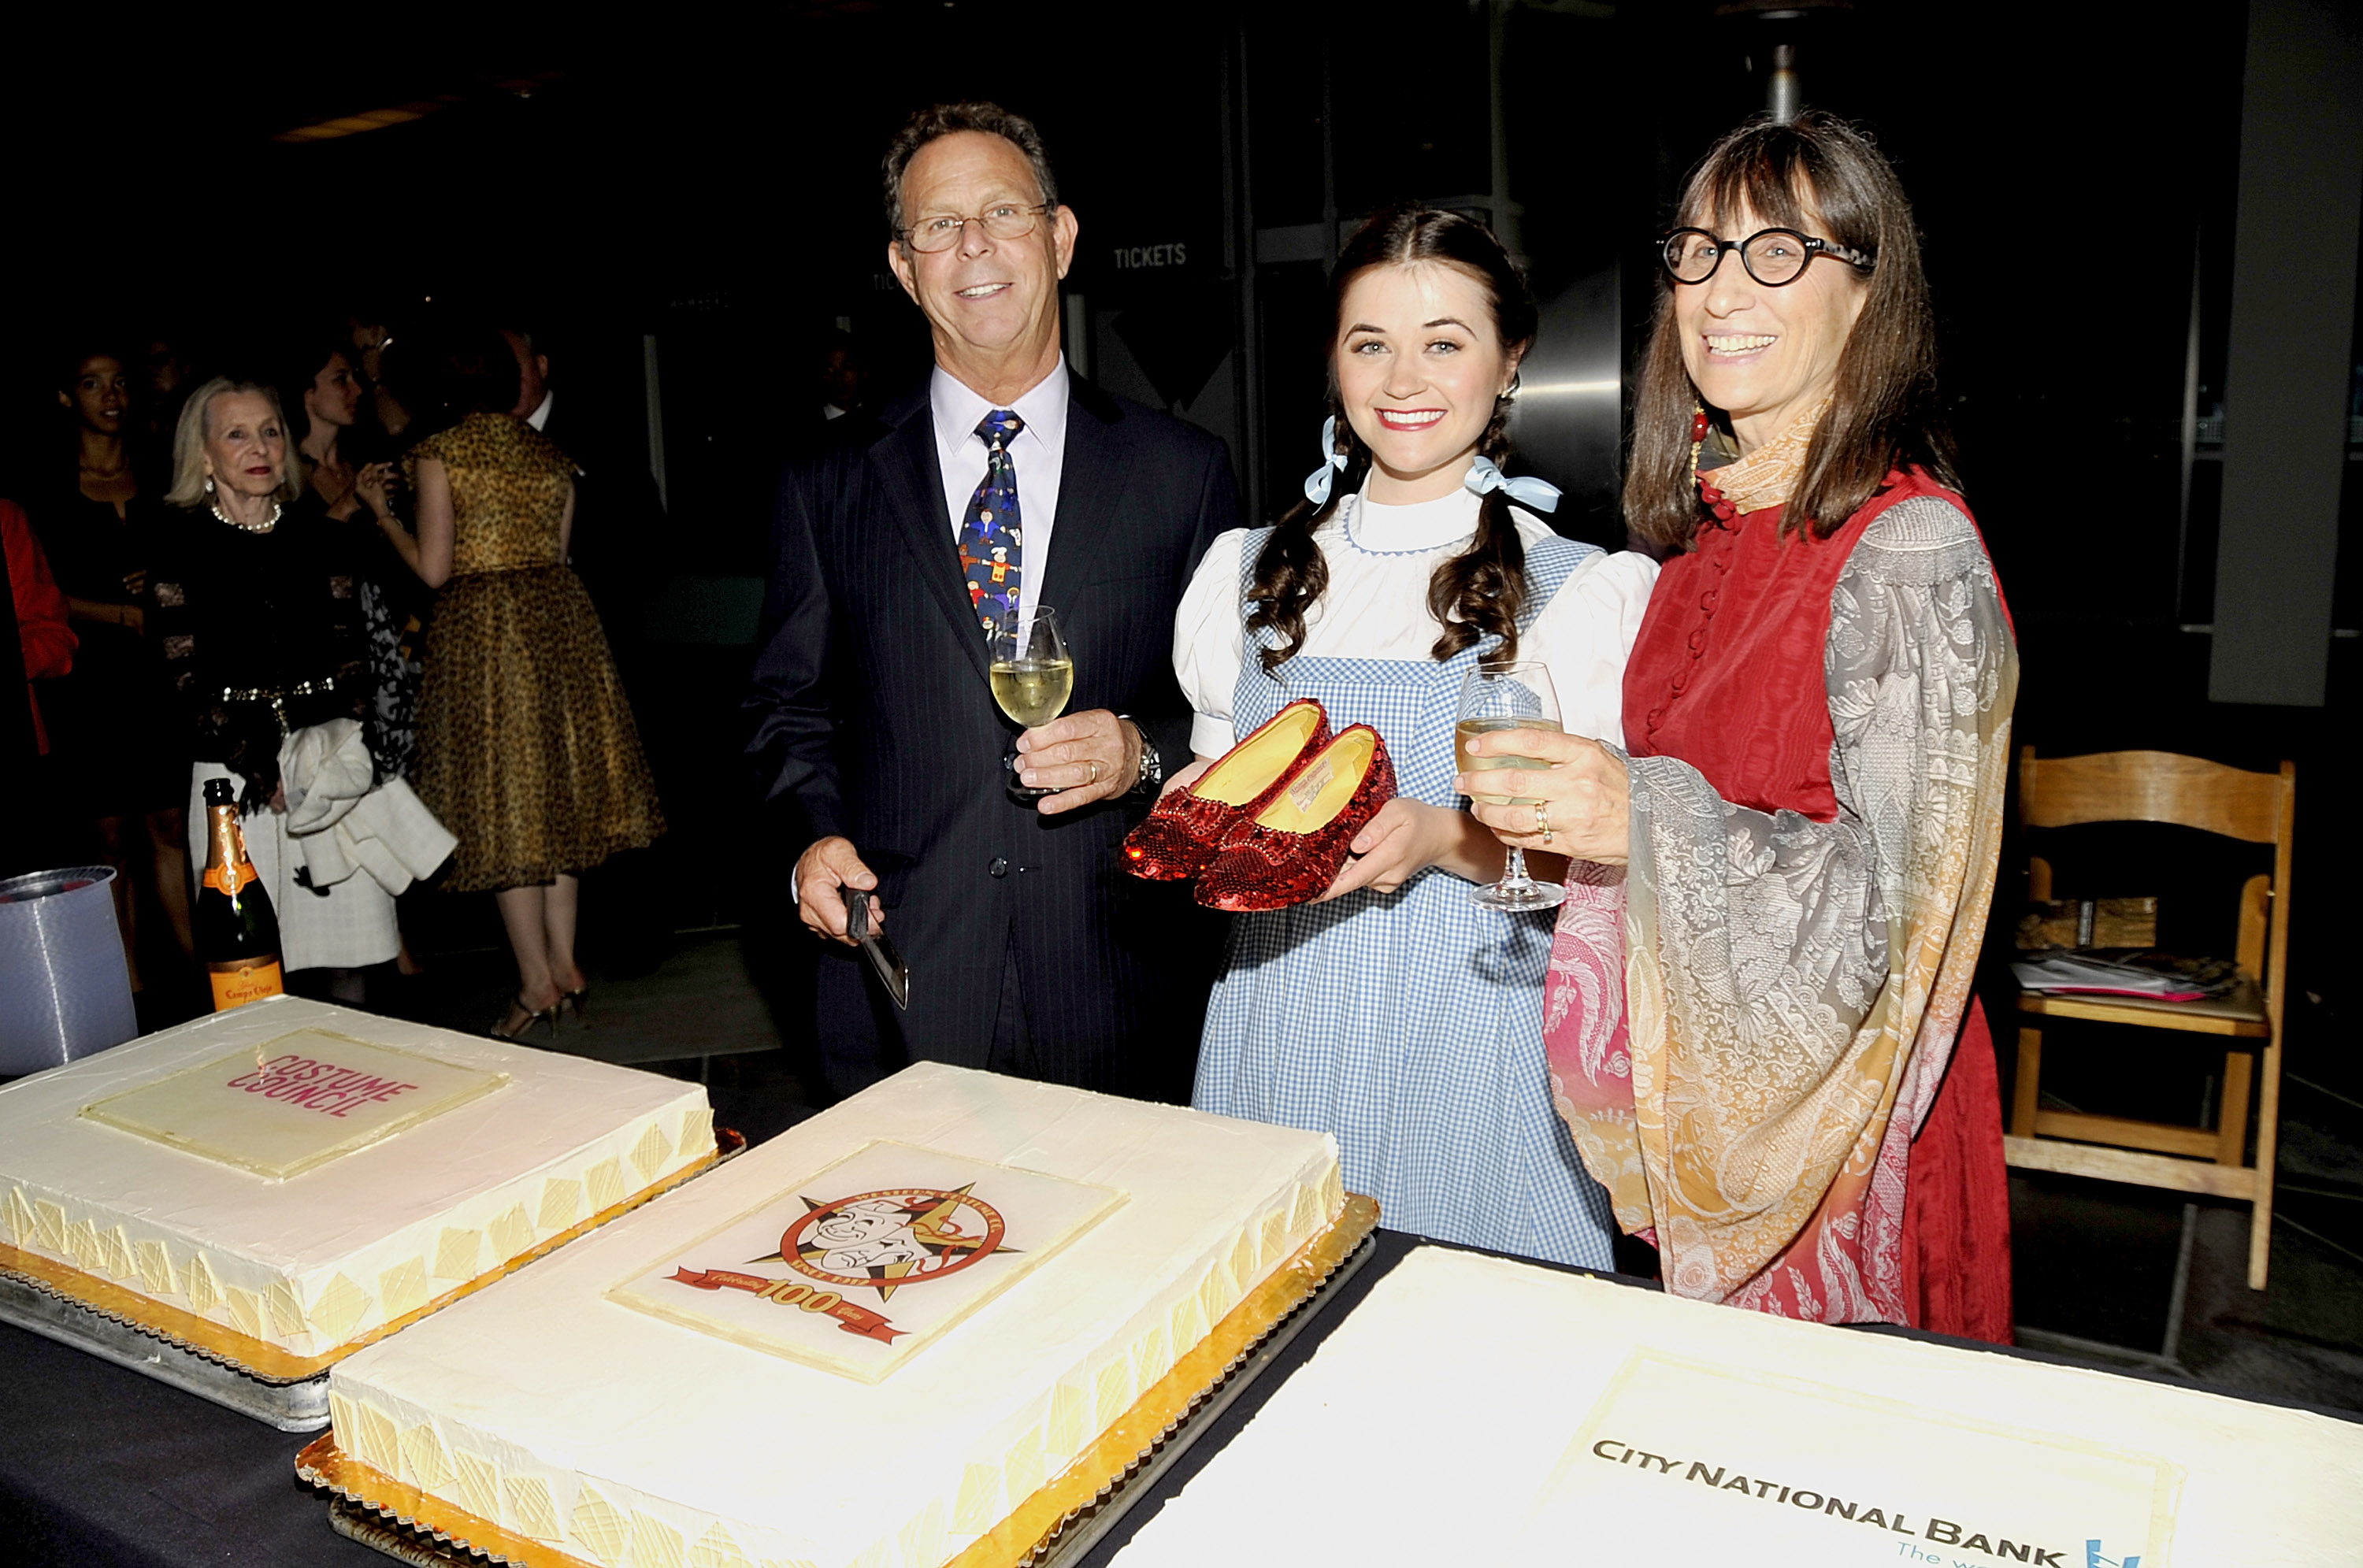 (L-R) President of Western Costume Company, Eddie Marks, the model wearing the Dorthy dress and holding thr ruby red sippers that were worn by Judy Garland in 'The Wizard Of Oz' and head of research at Western Costum Company Bobi Garland prepare to cut the cake at The Costume Council Of LACMA Celebrates The Western Costume Company: The First 100 Years at the Bing Theatre At LACMA on June 20, 2012 in Los Angeles, California.